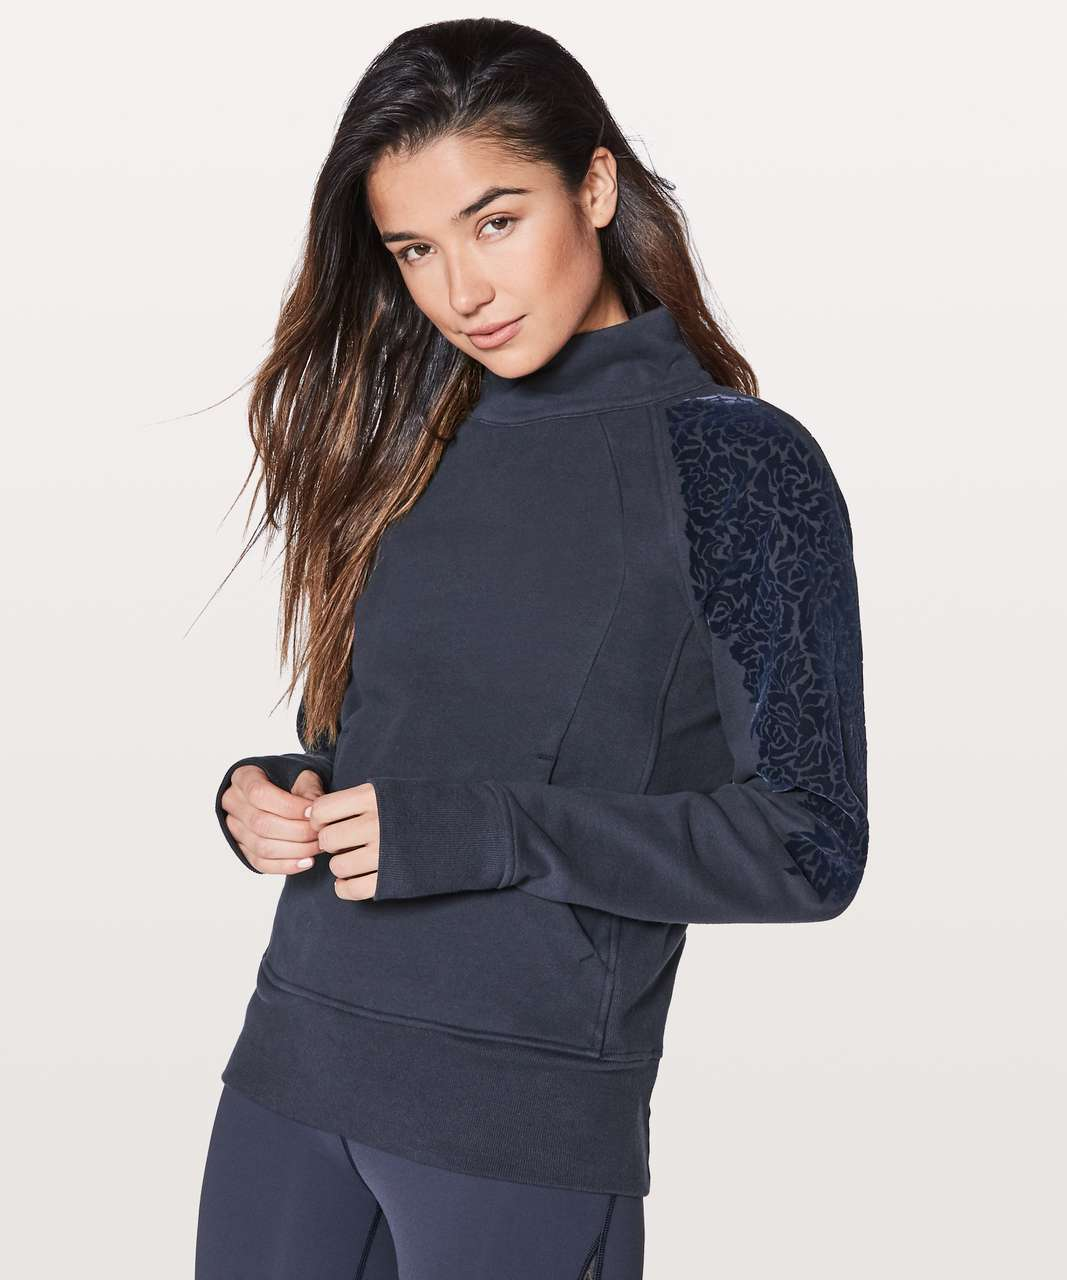 Lululemon Floral Flock Pullover - Midnight Navy